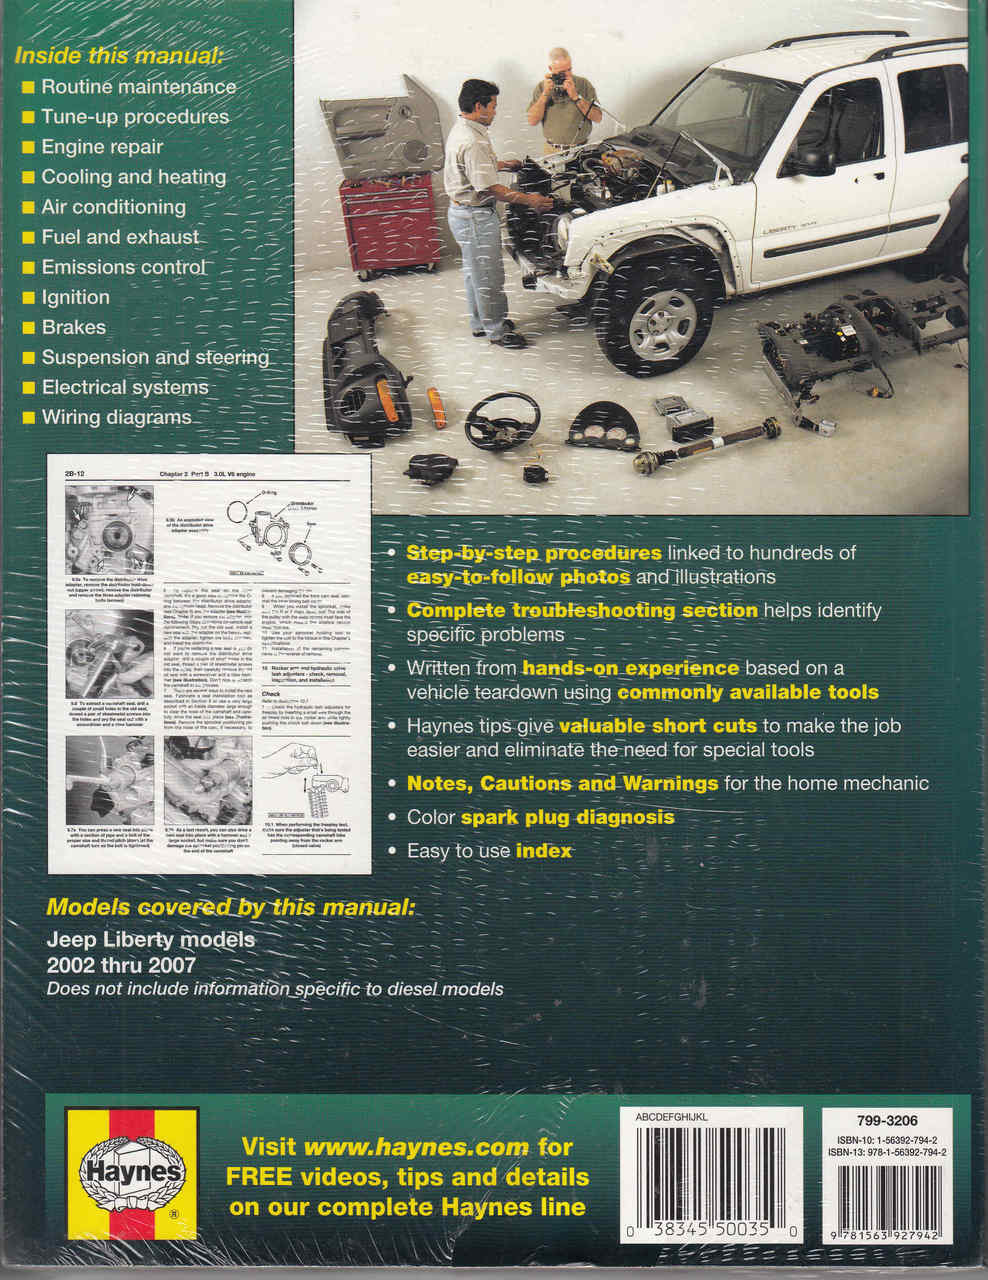 ... Jeep Liberty 2002 - 2007 Gasoline Models Workshop Manual - back ...